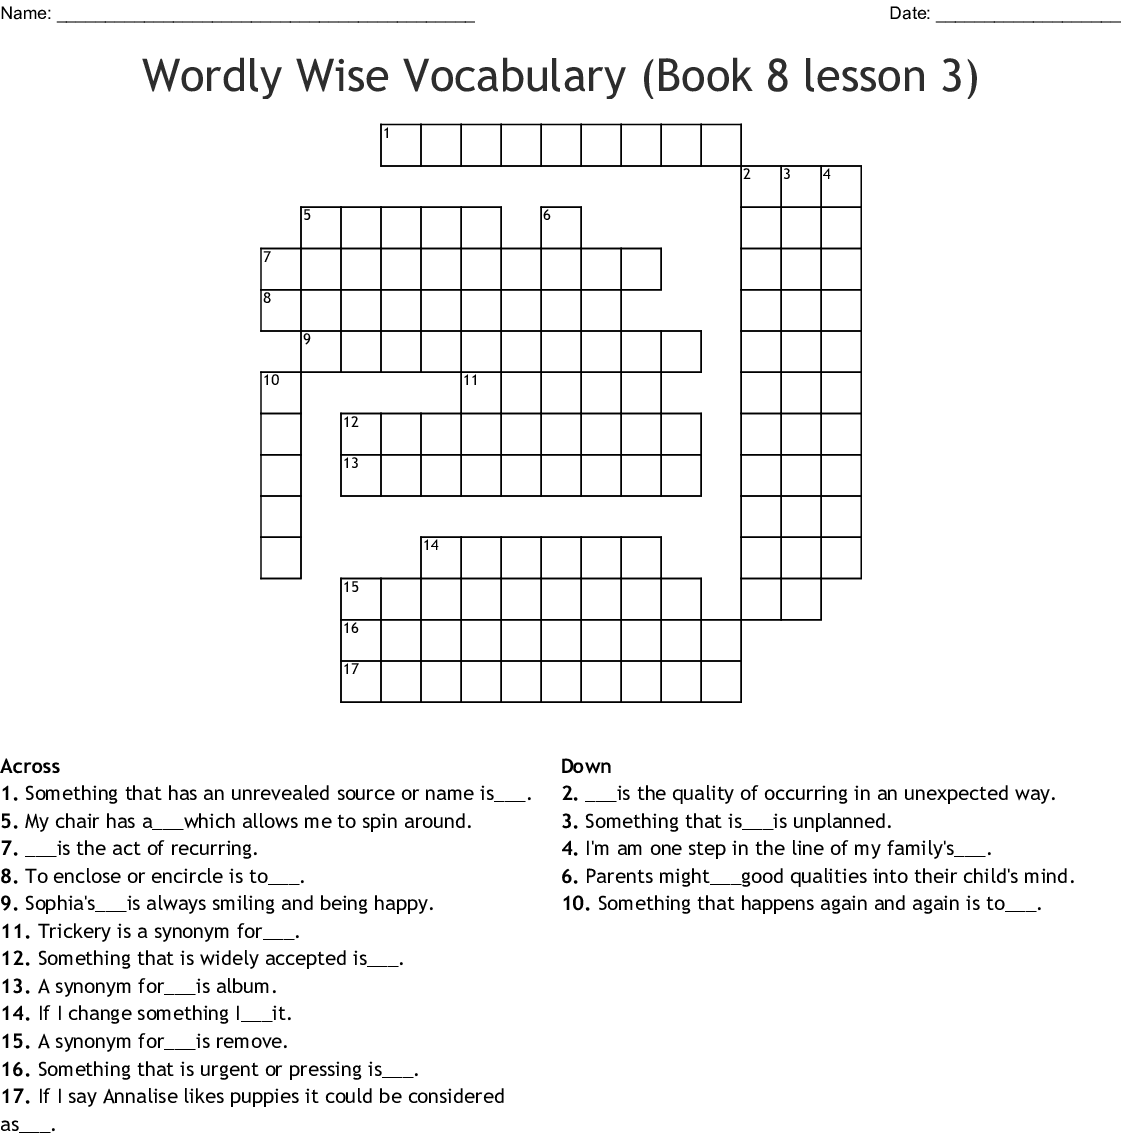 Bestseller Wordly Wise Book 8 Lesson 6 Answers